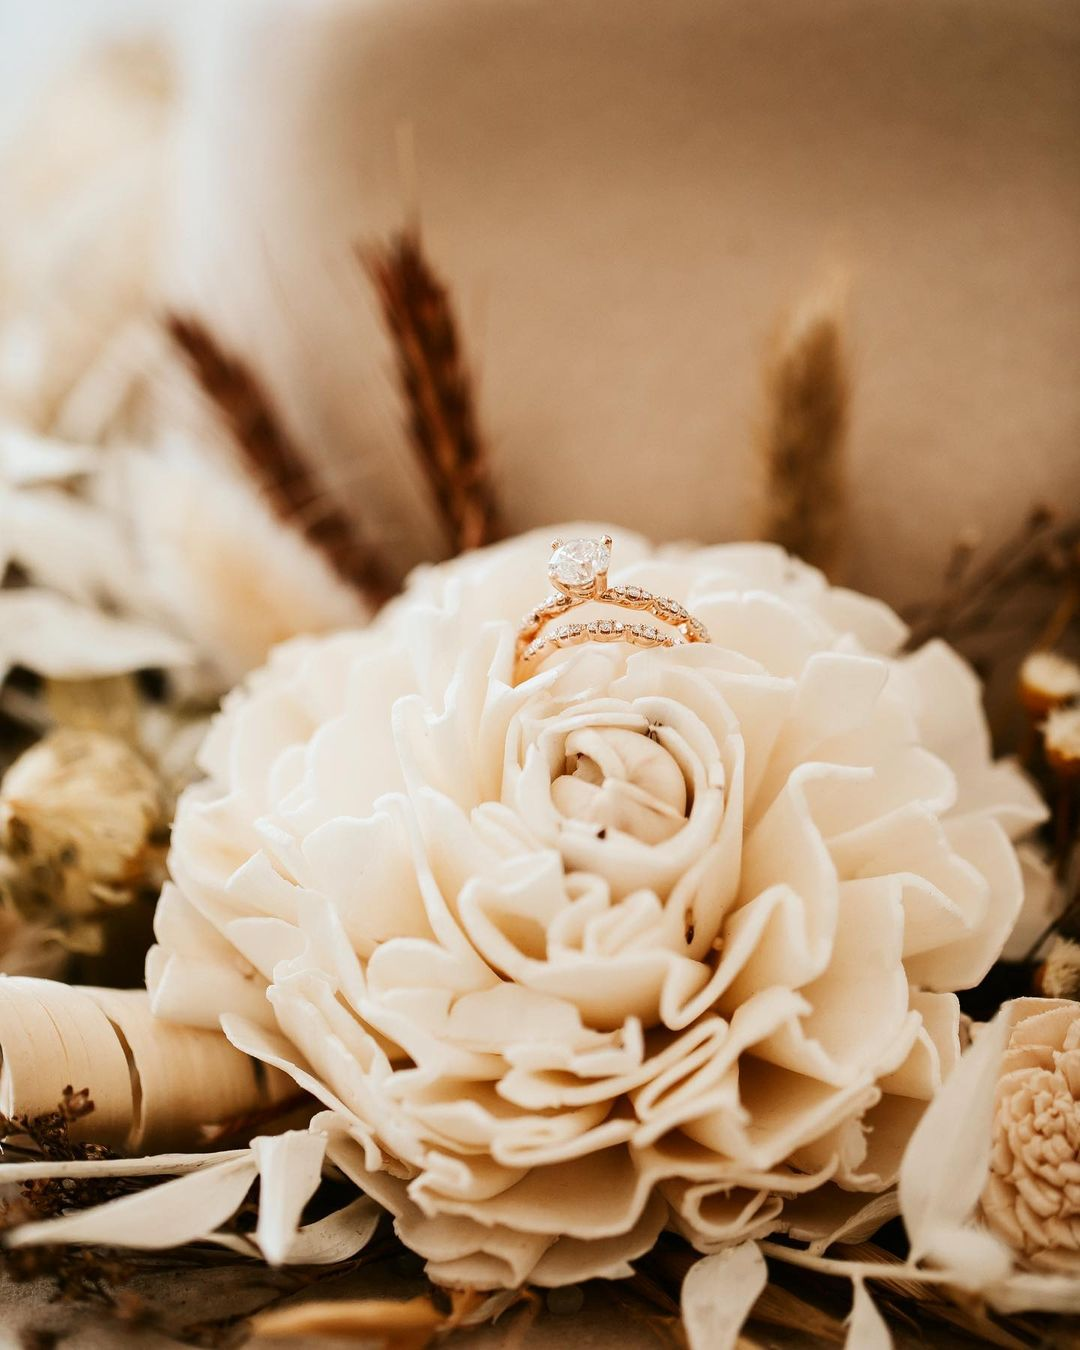 Close up shot of a wedding ring placed on top of an artificial white color flower